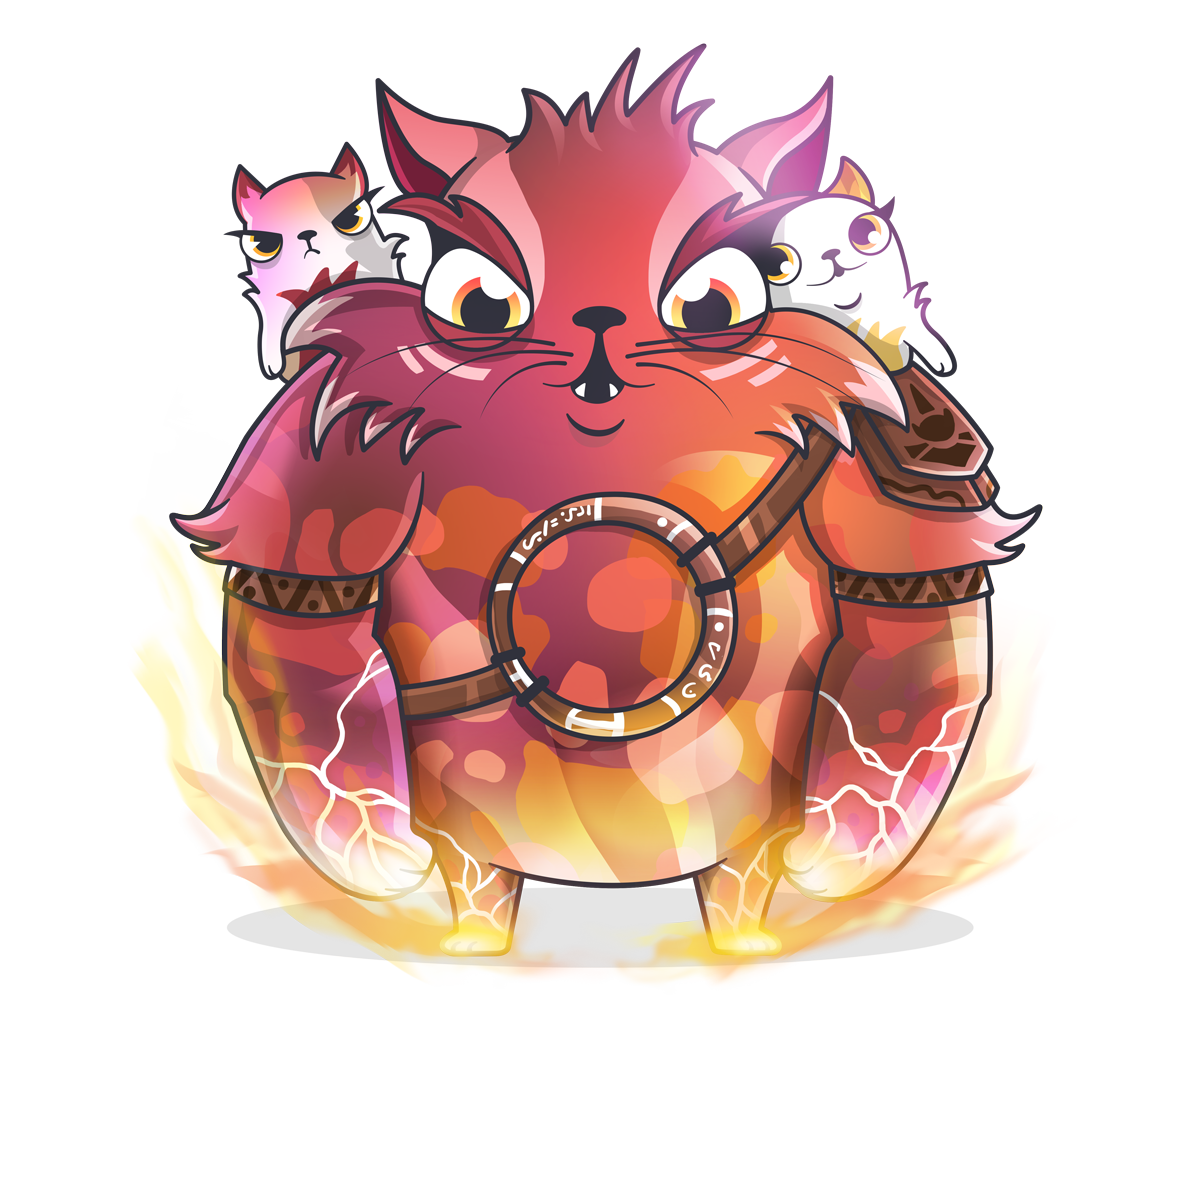 cryptokitty #1820410